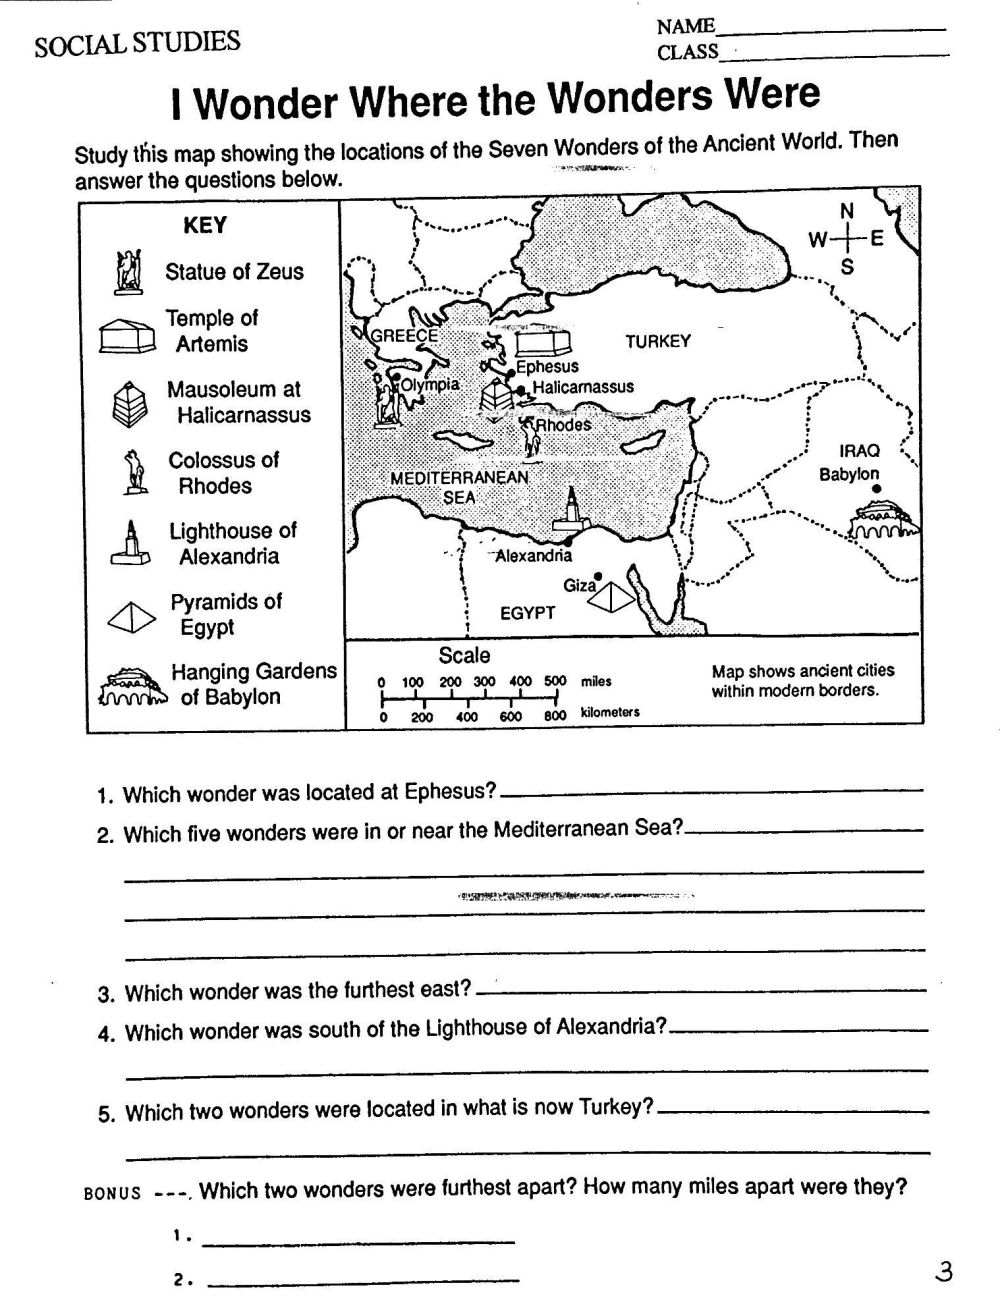 medium resolution of Social studies homework help for 6th graders! Social studies homework help  for 6th graders for creative